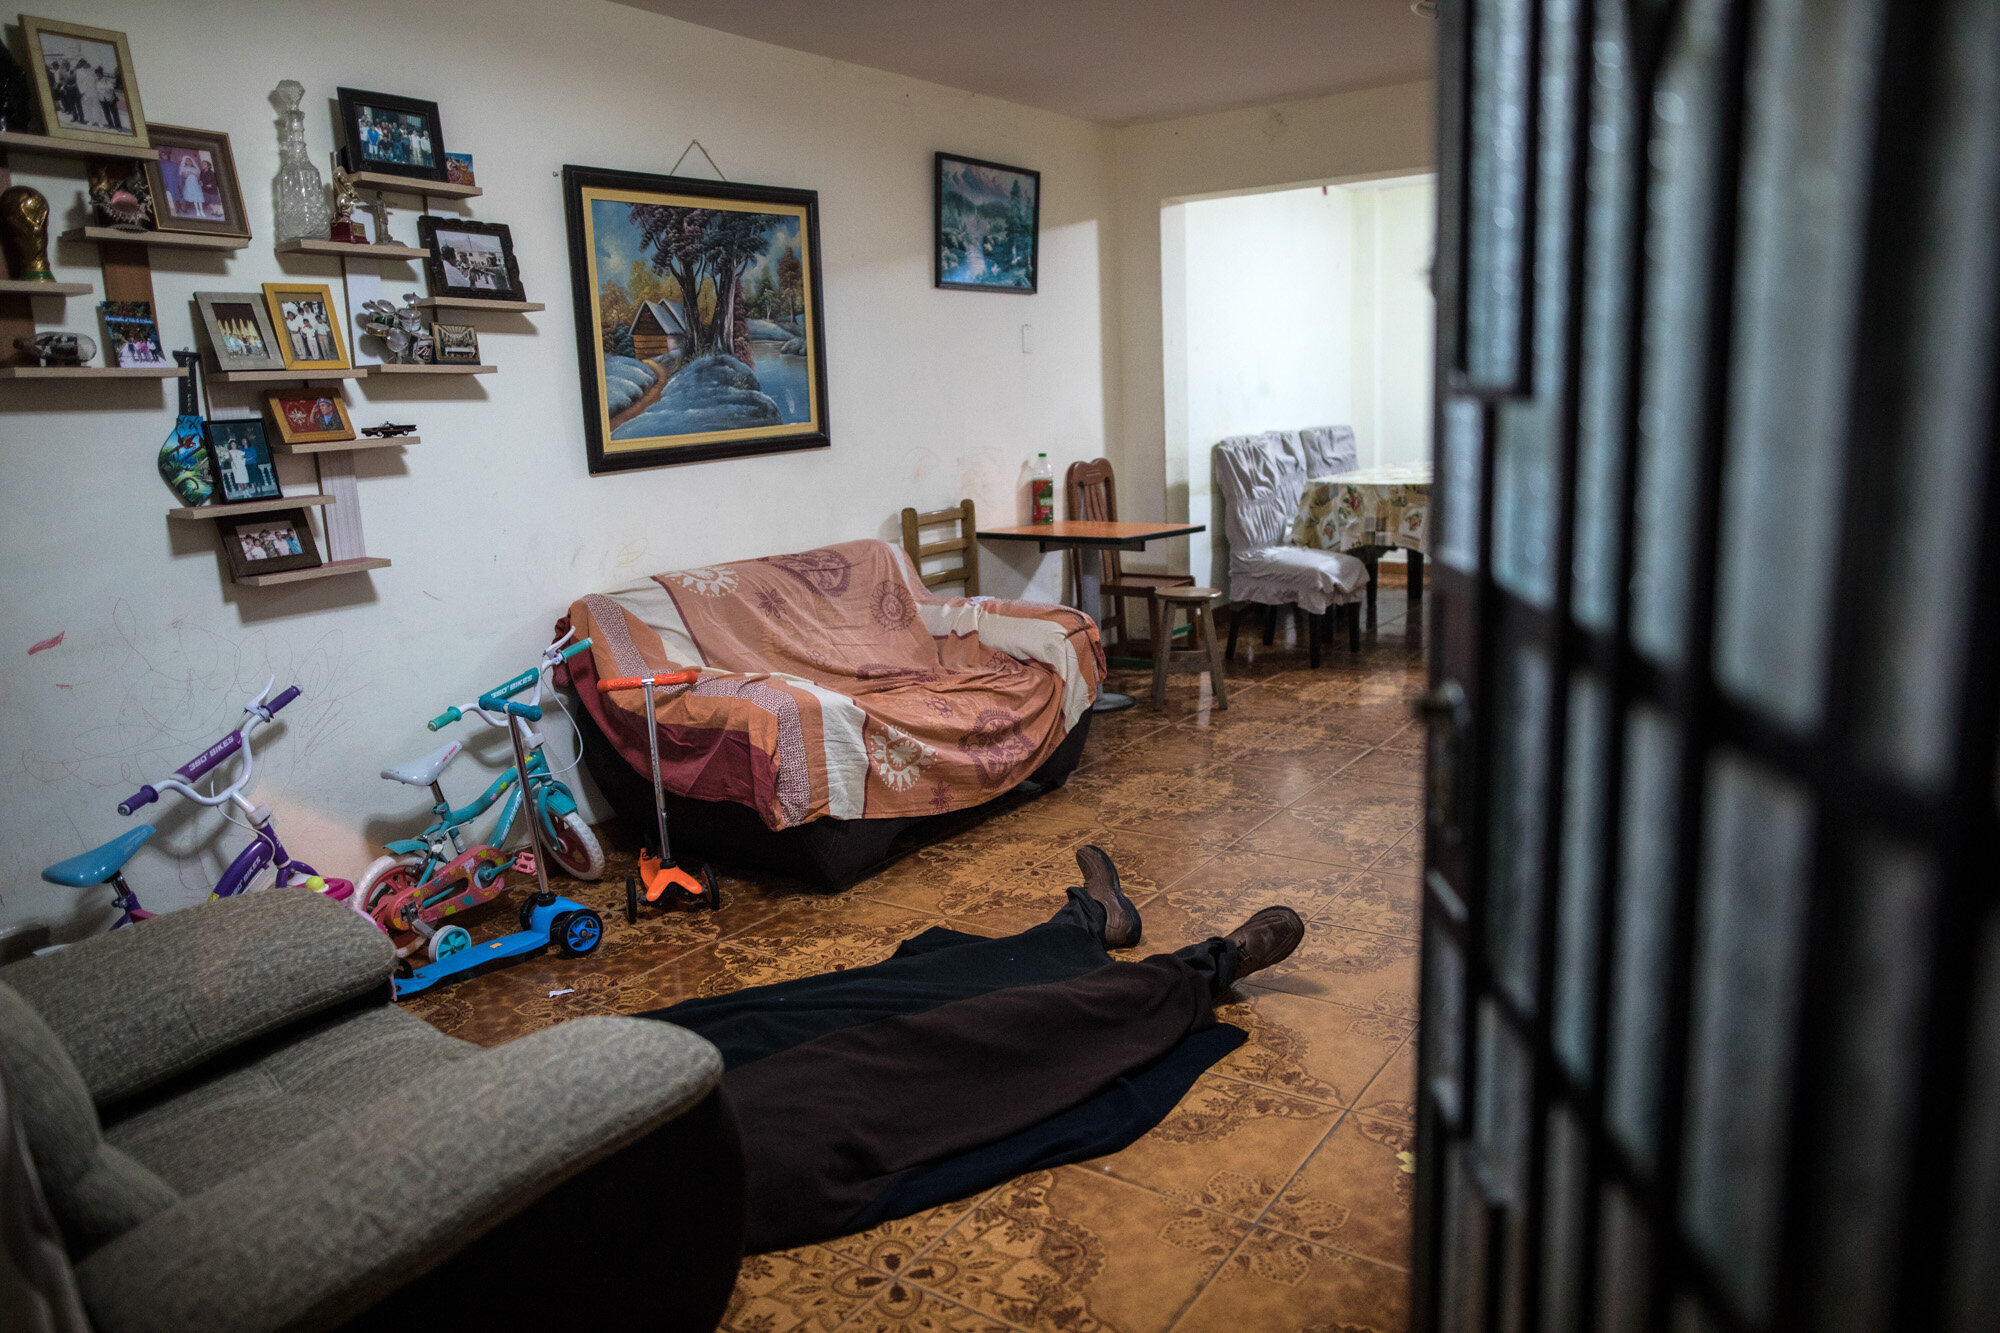 The body of Ricardo Noriega, 77, lies on the floor of his living room in Lima, Peru, on May 4, 2020, after he died of COVID-19. Noriega had great difficulty in breathing, one of the most characteristic symptoms of the disease, and waited for death sitting in an armchair in the living room after he was unable to find a taxi to take him to the hospital that morning. (AP Photo/Rodrigo Abd)